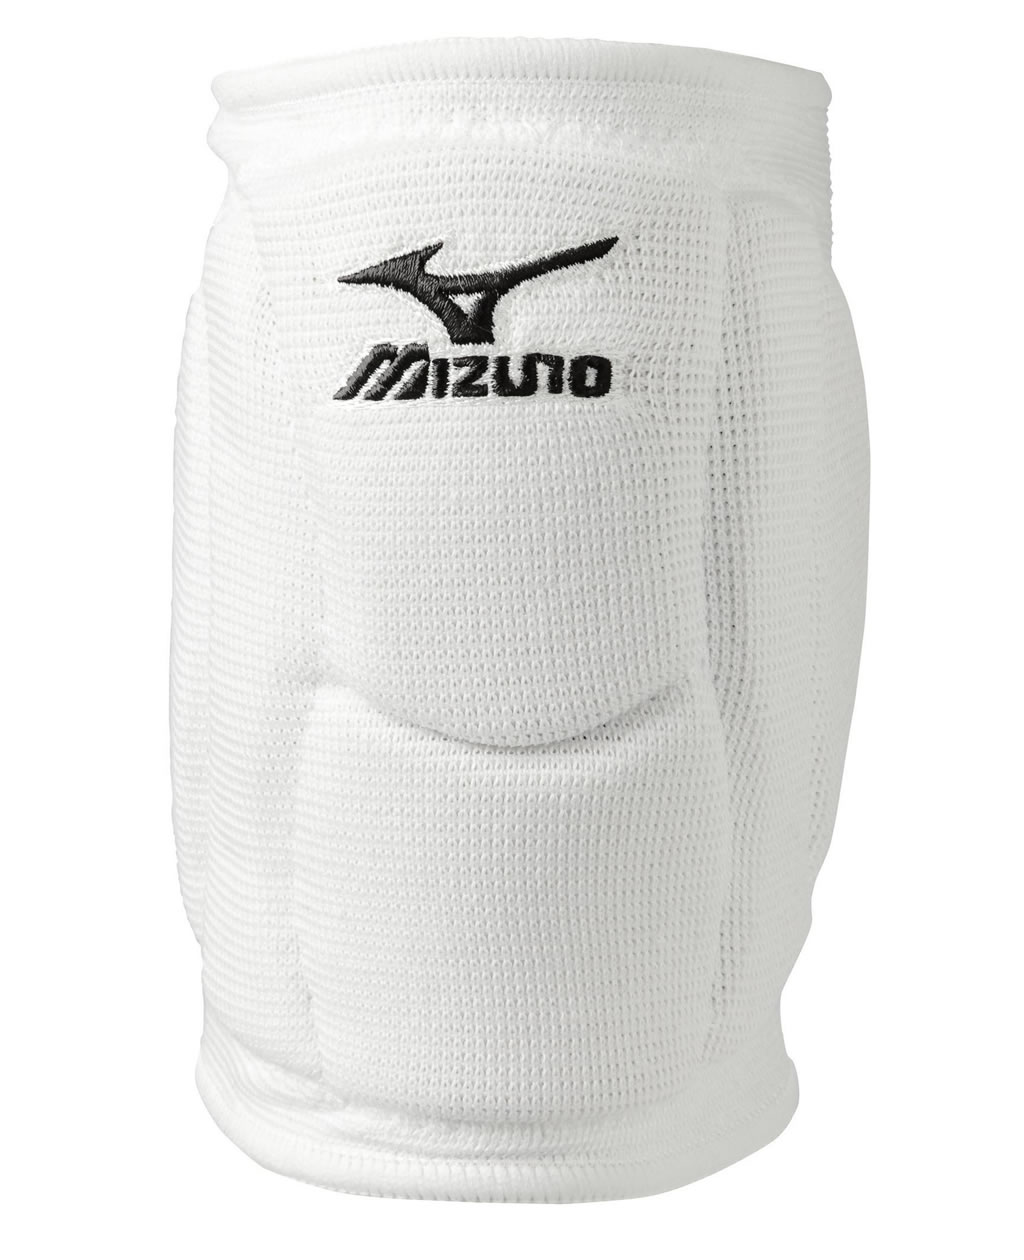 Elite 9 SL2 Knee pads by Mizuno